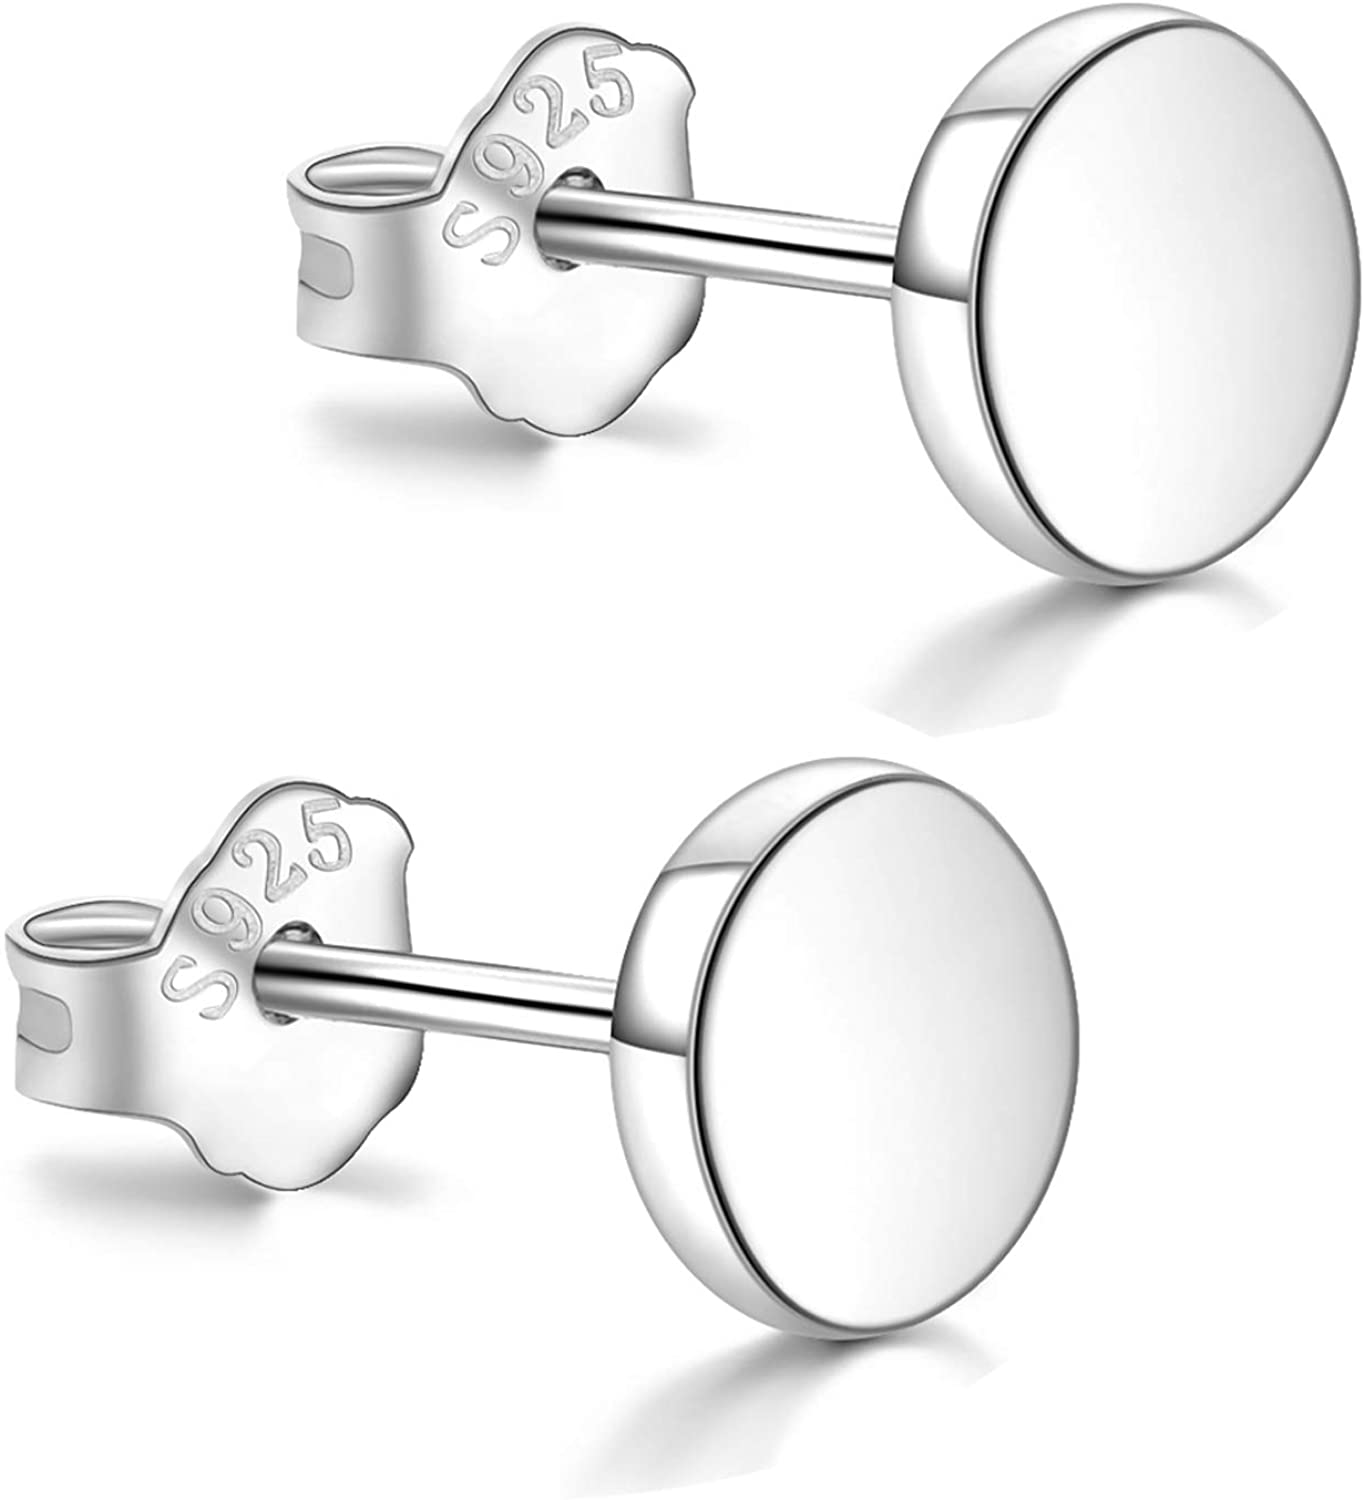 White Gold Plated Sterling Silver Dot Stud Earrings 3mm-8mm Options, Flat Round Disc Studs Hypoallergenic Jewelry 61cB8PfwLIL